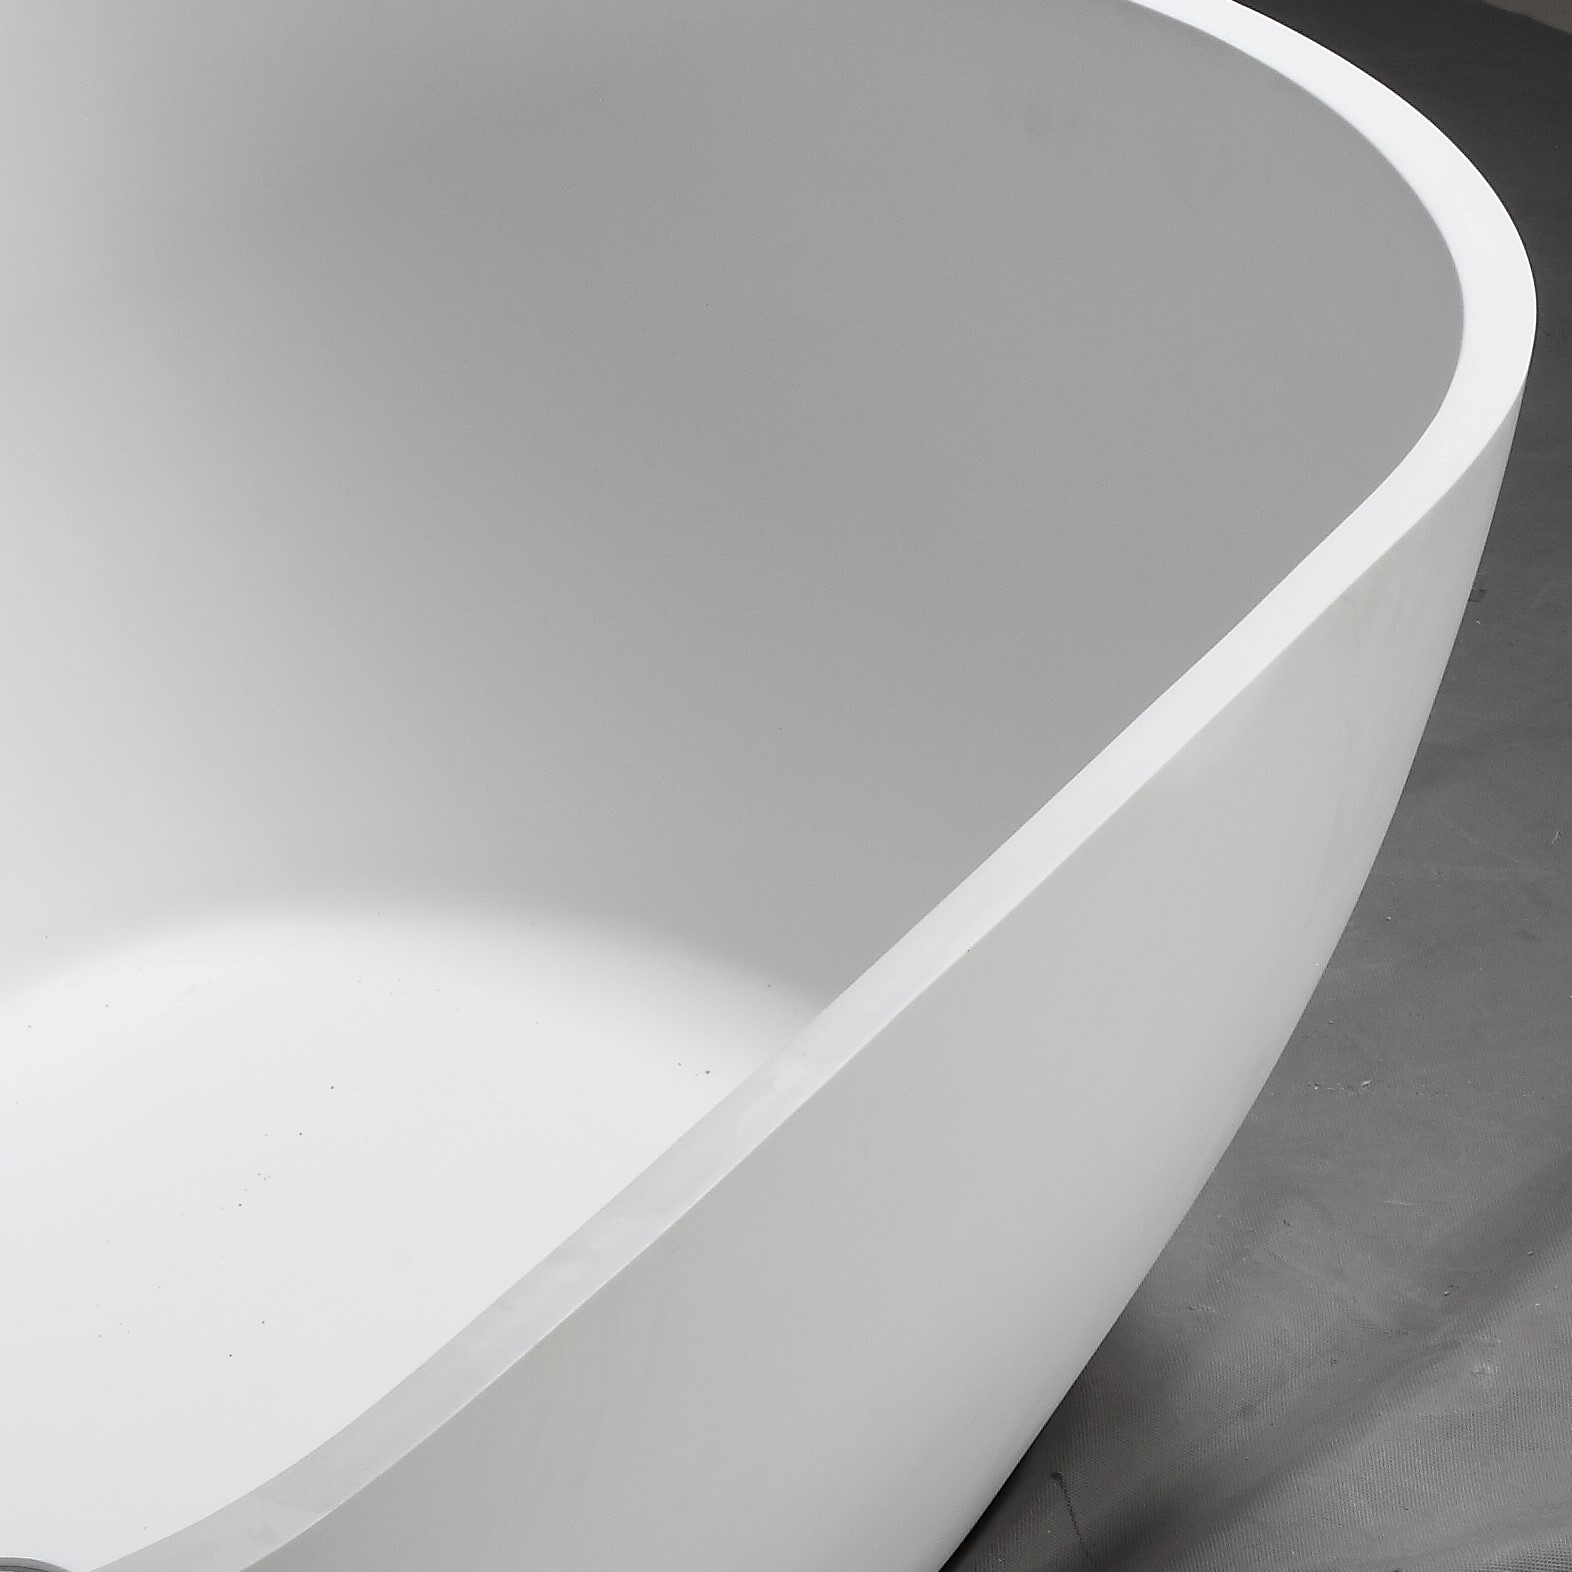 Bellissimo-Professional Stone Bathtub Surround Solid Surface Freestanding Tubs -7